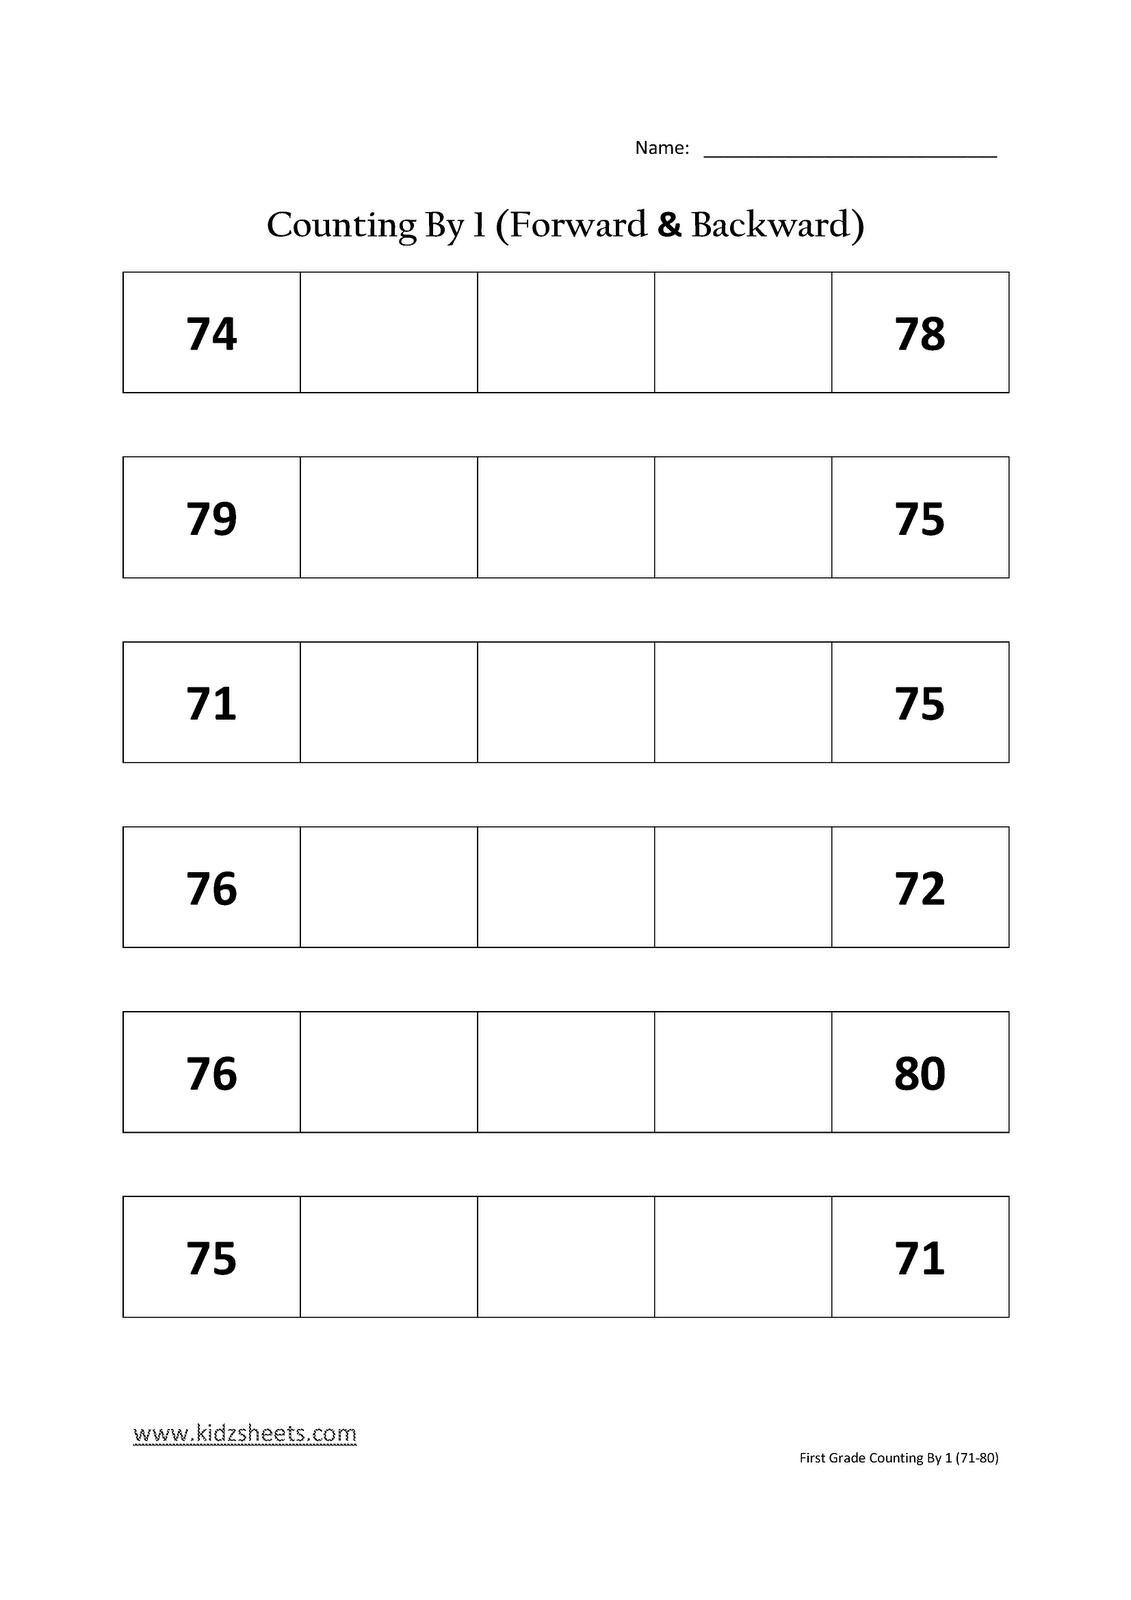 Kidz Worksheets First Grade Counting By 1 71 80